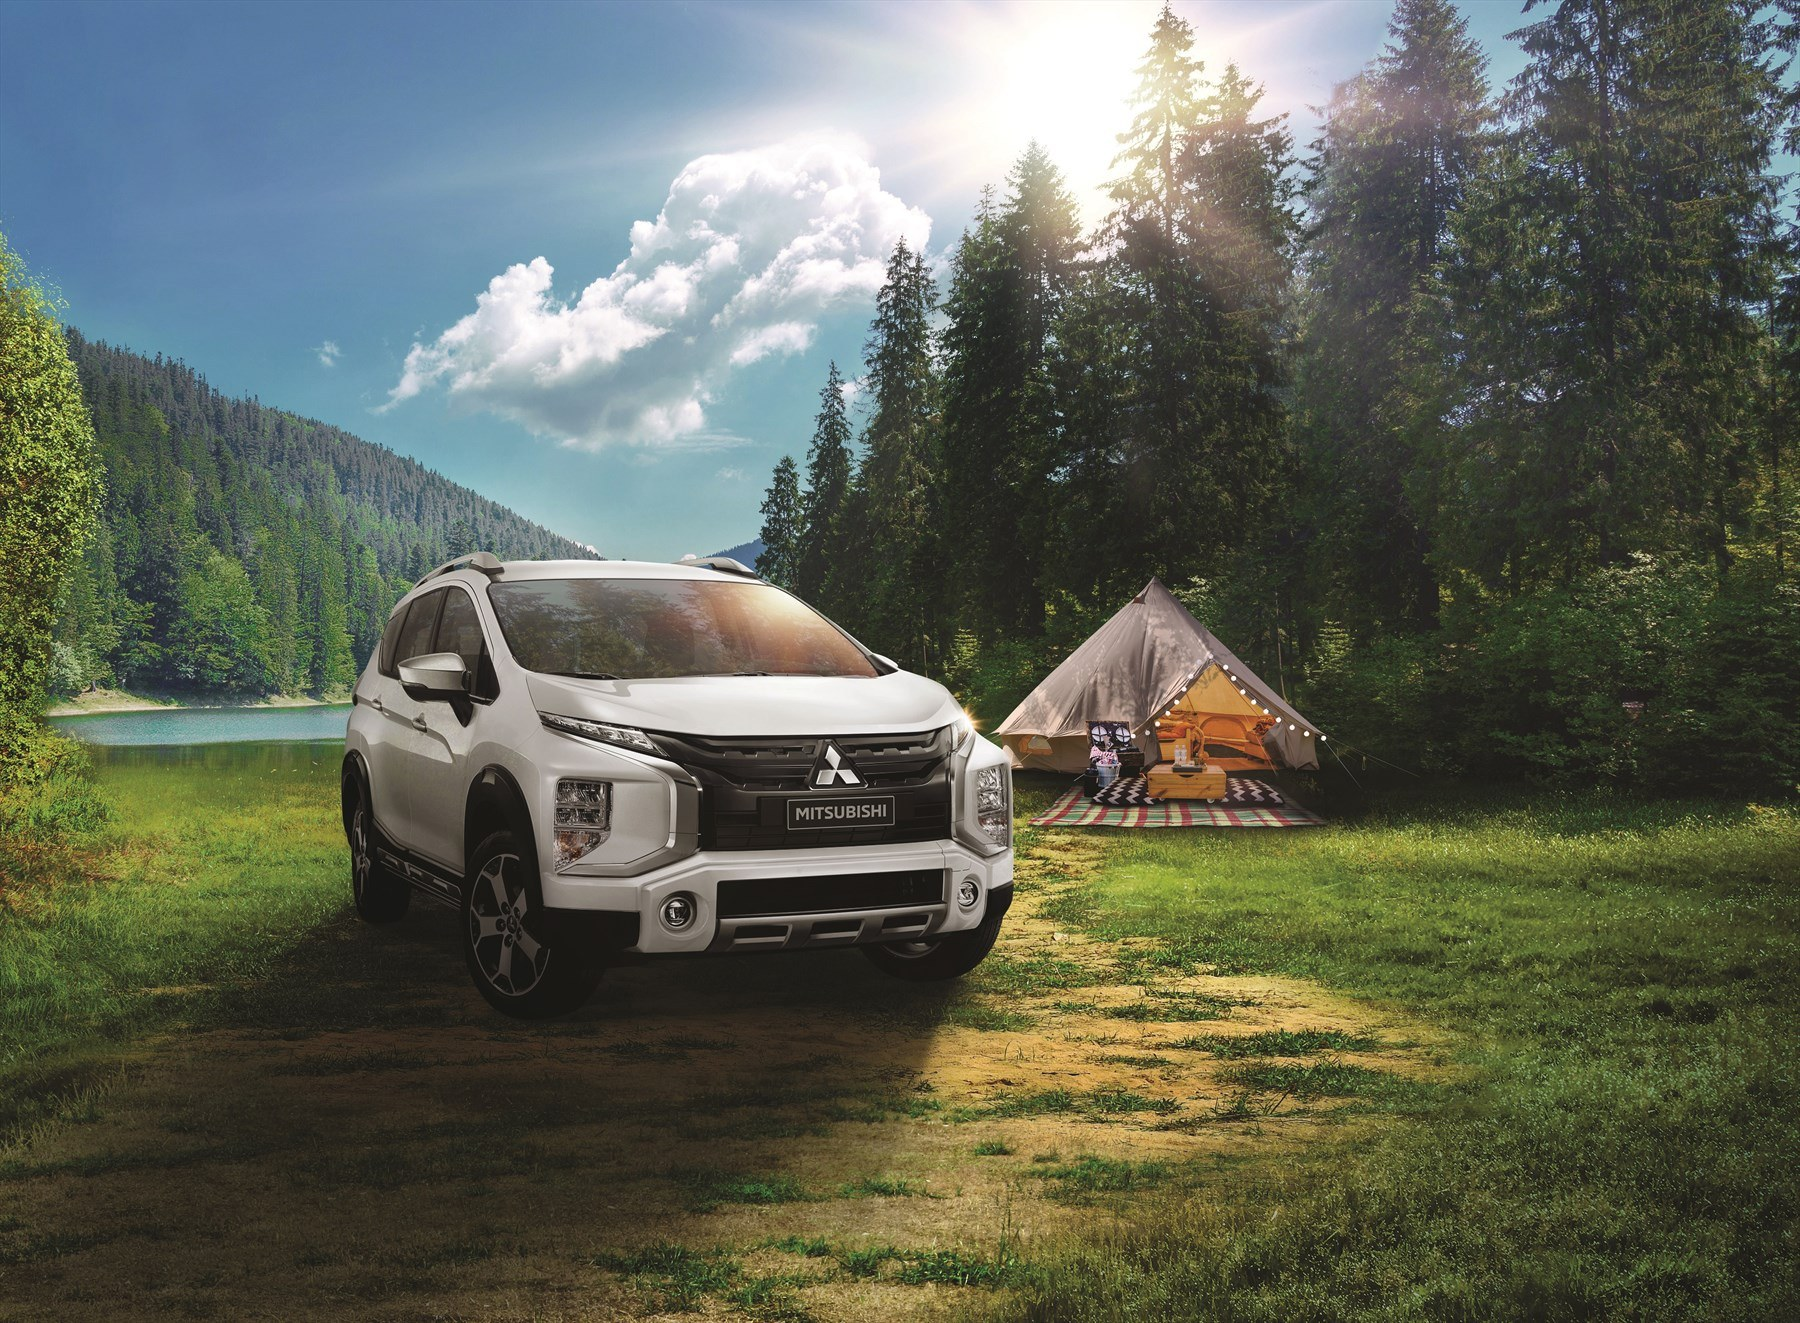 Mitsubishi's new Xpander Cross will find its way onto the local market as one of the new products planned for local introduction within the next two years. The other model is the small hatchback, called the Mirage.